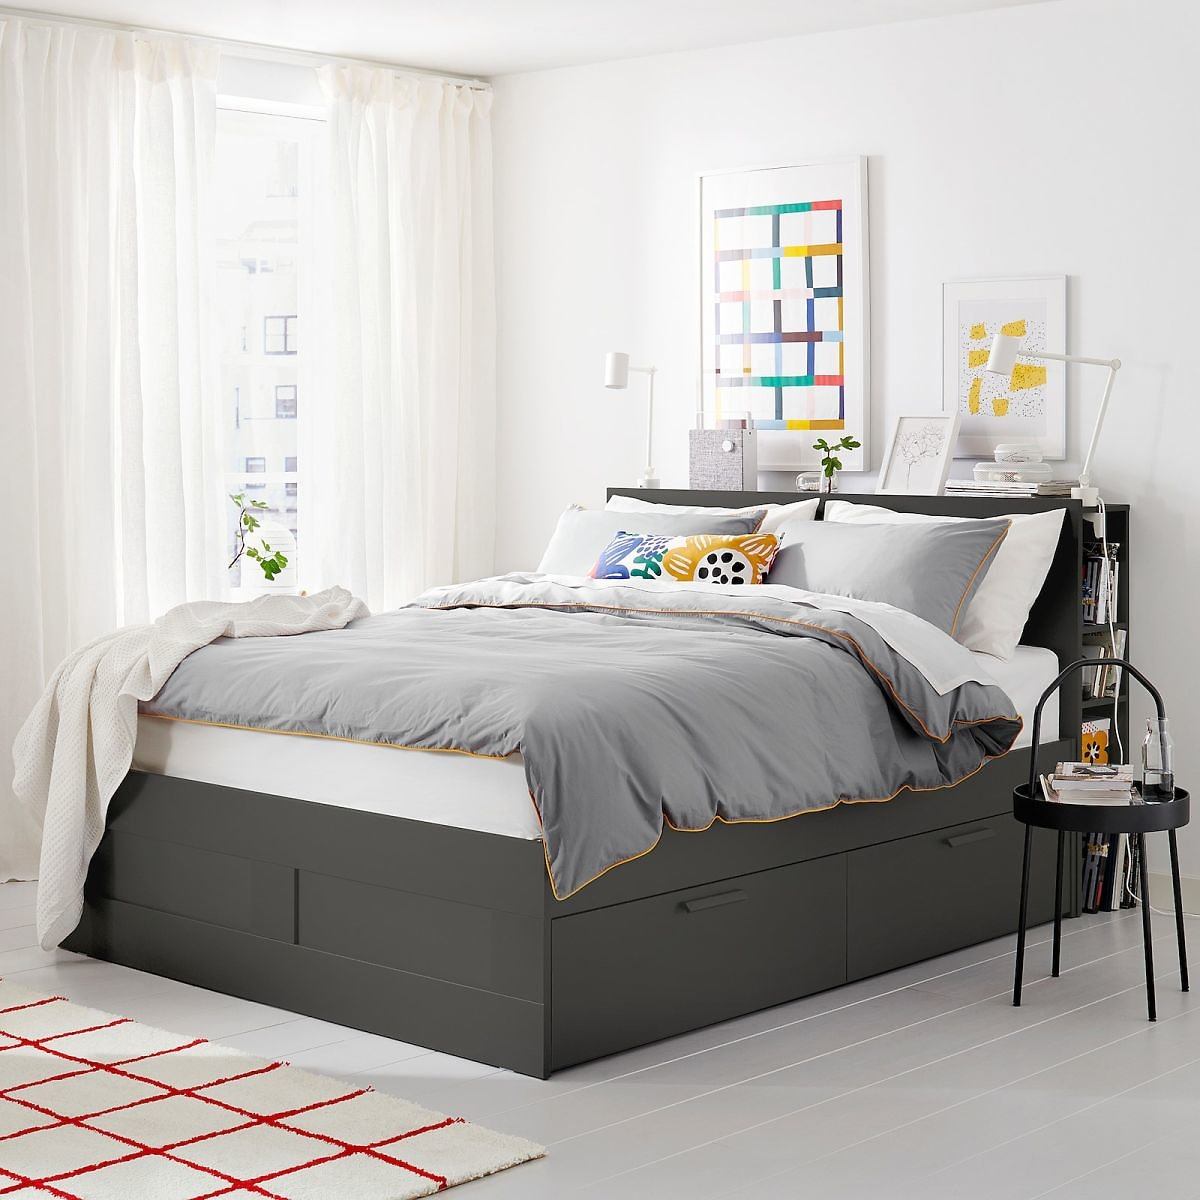 BRIMNES Bed Frame with Storage & Headboard, Luröy Queen (3 Colors)